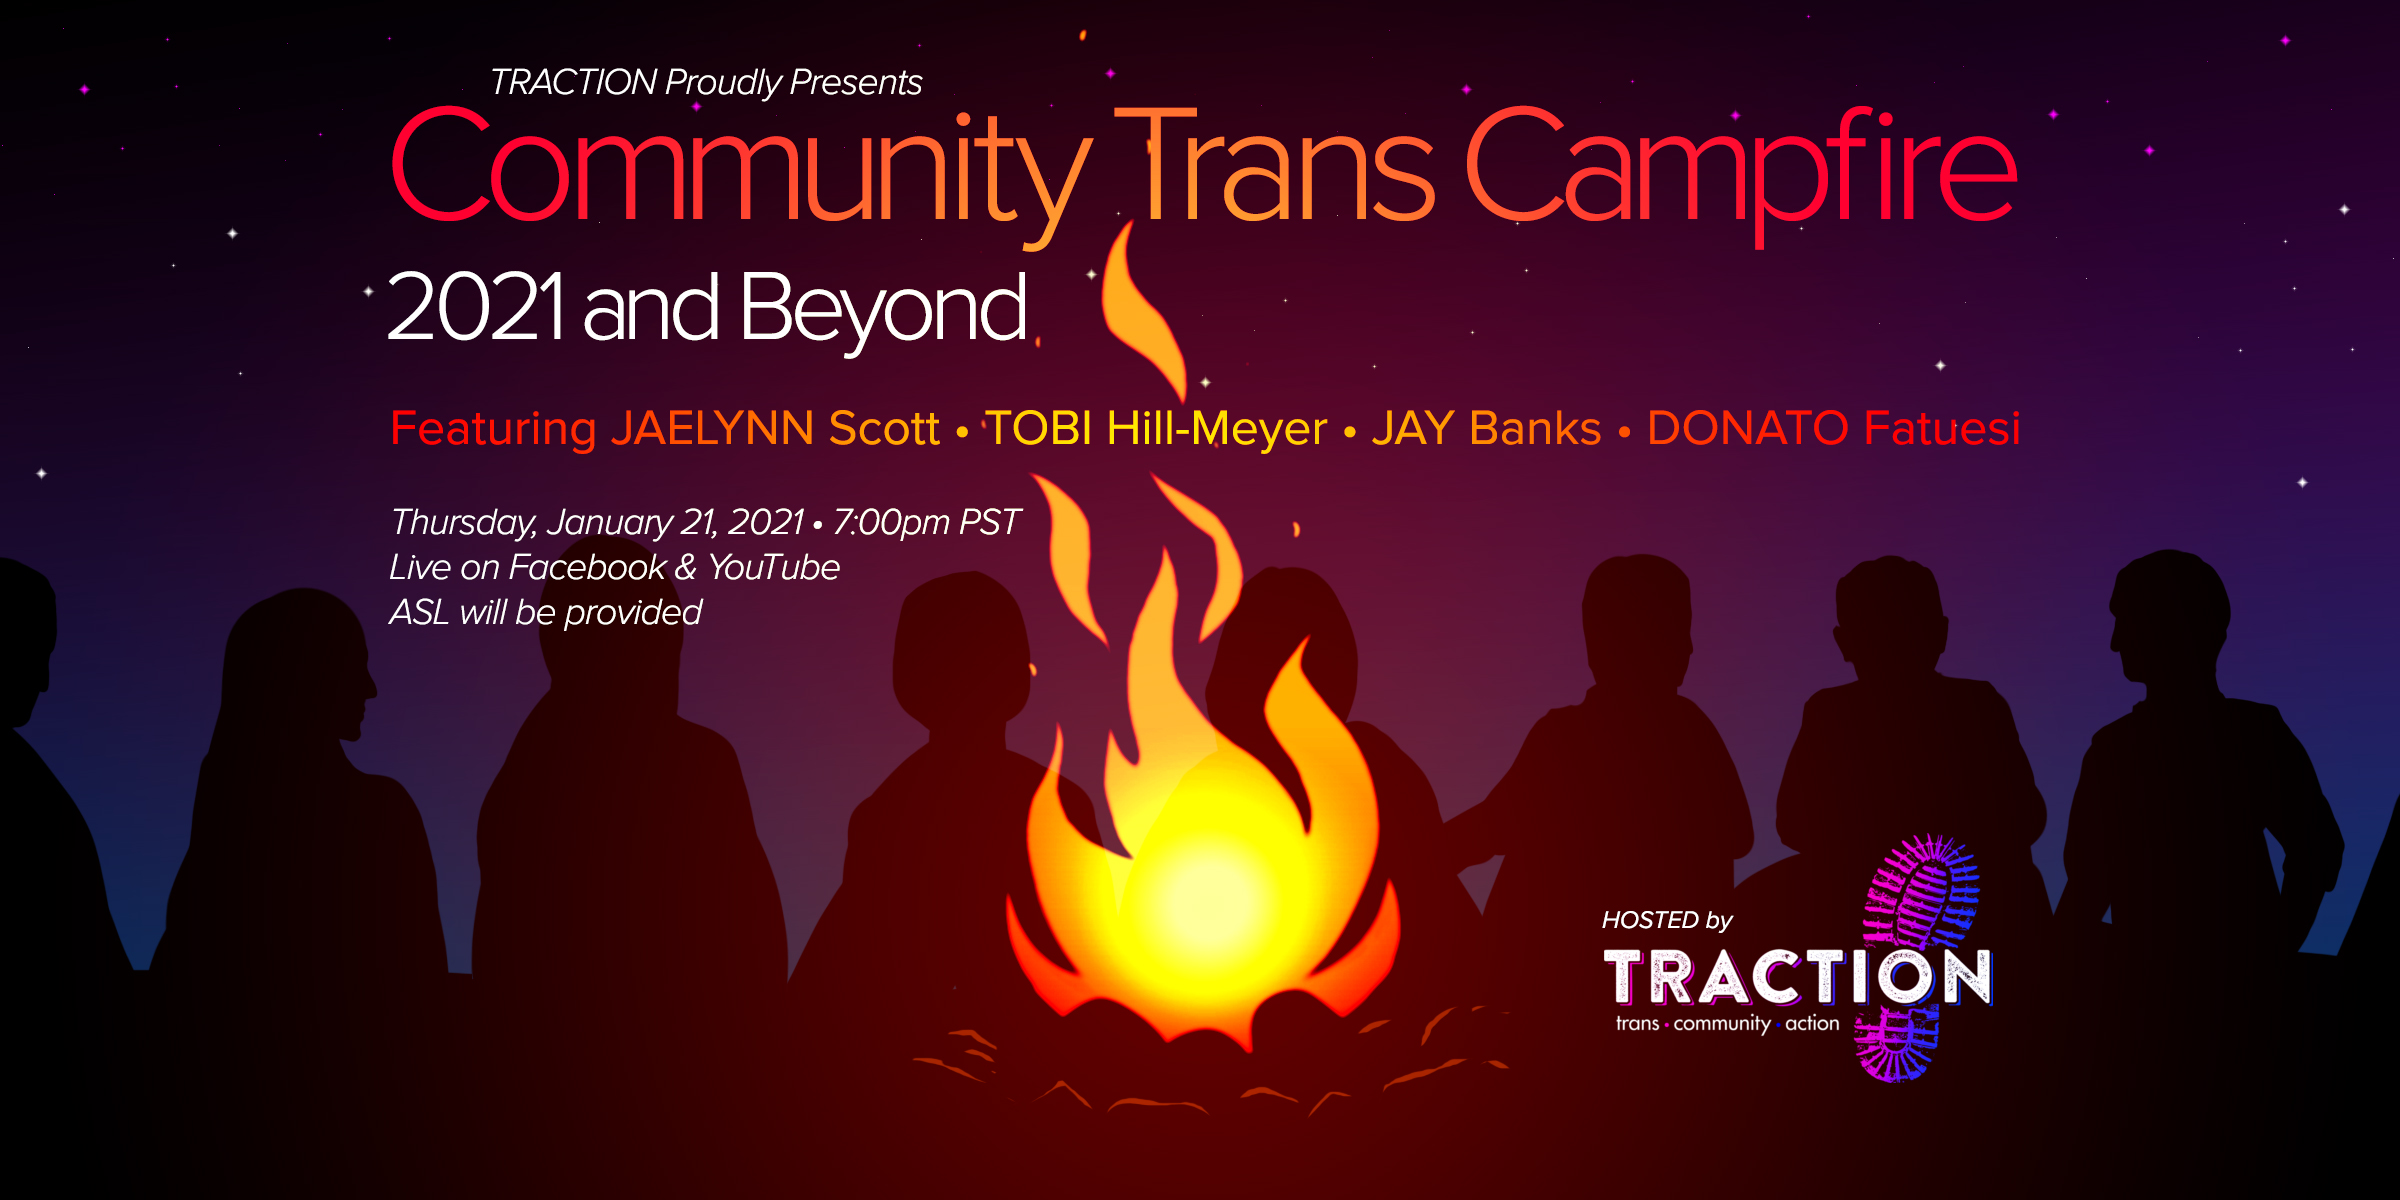 Community Trans Campfire: 2021 and Beyond